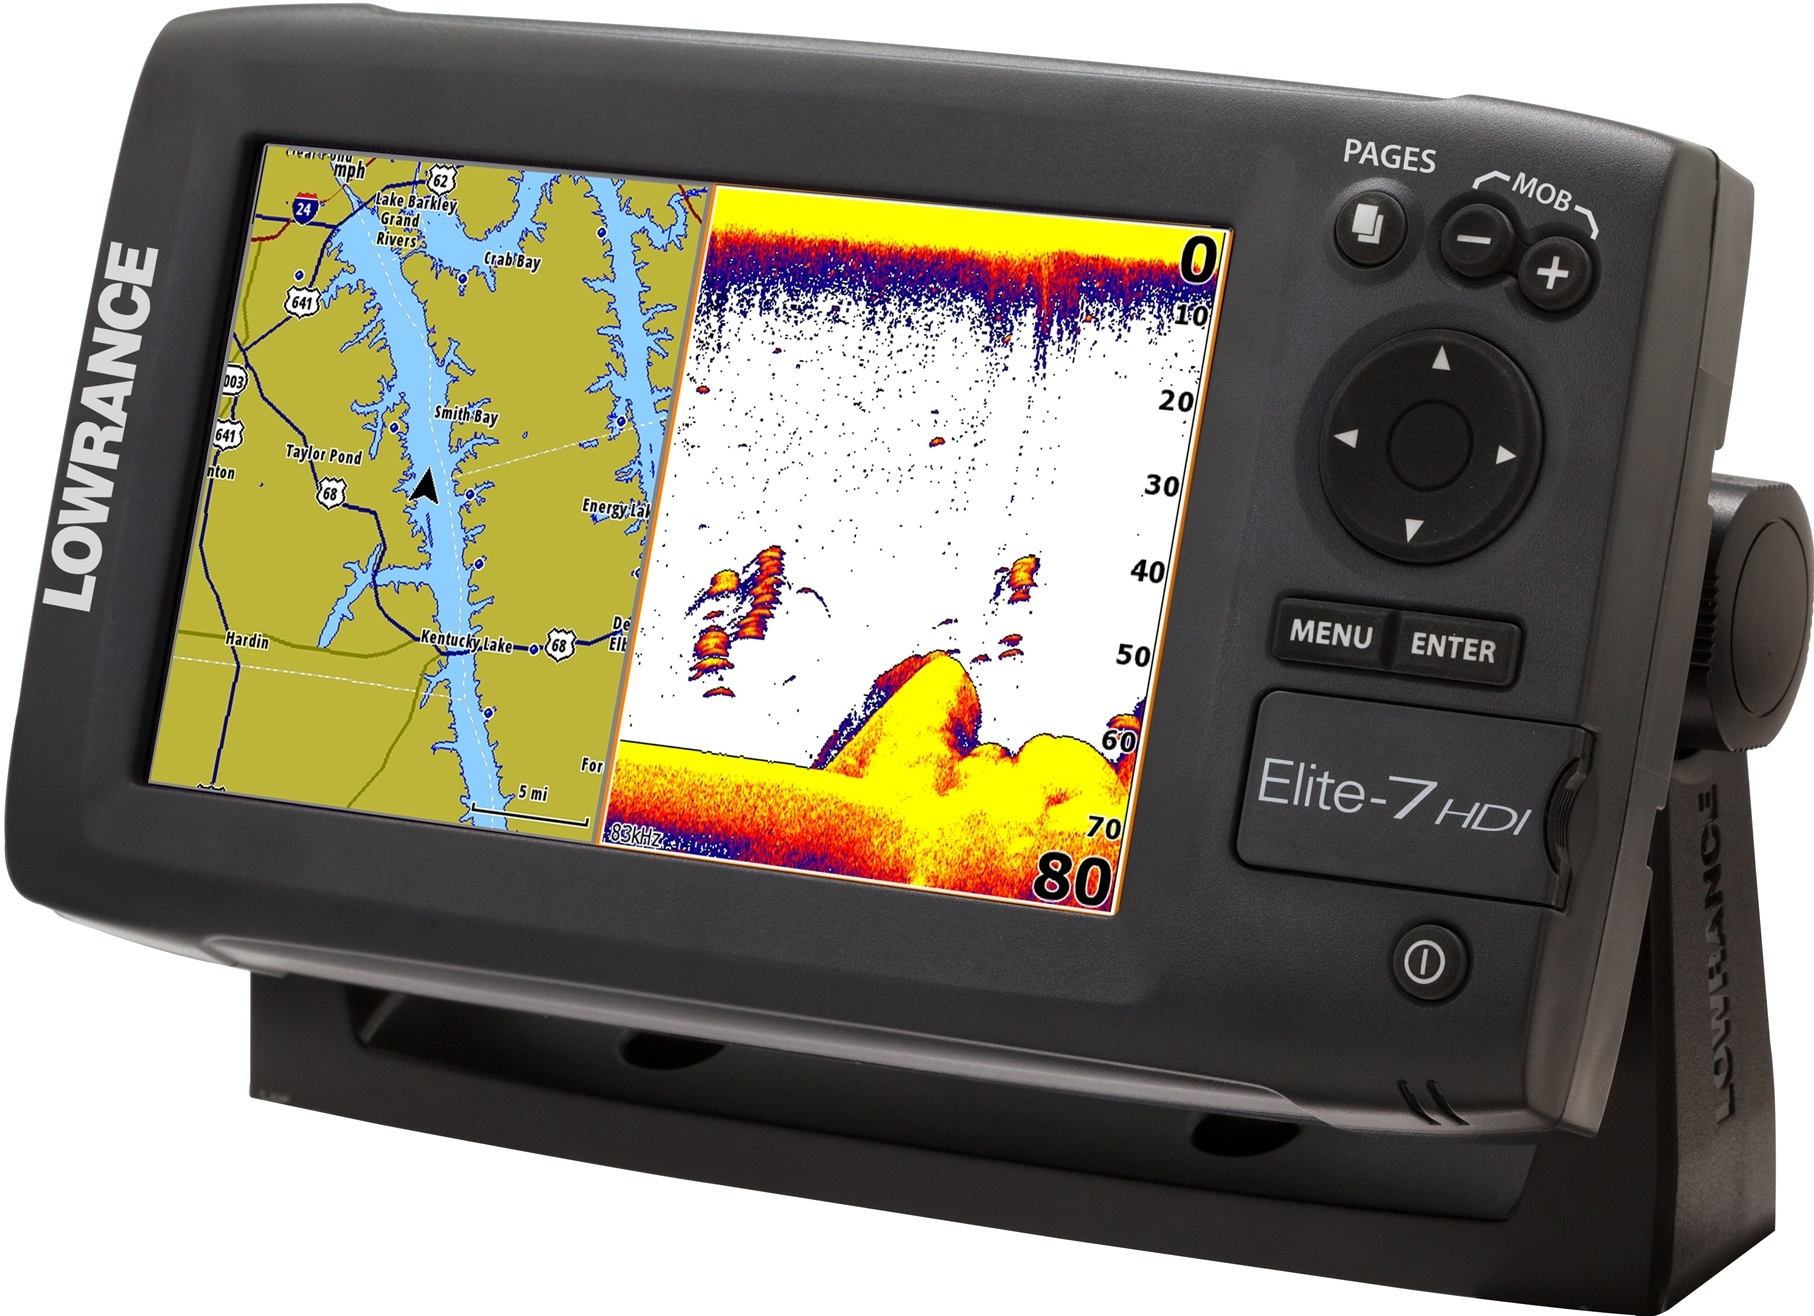 lowrance elite 7 hdi review fish finder guy. Black Bedroom Furniture Sets. Home Design Ideas